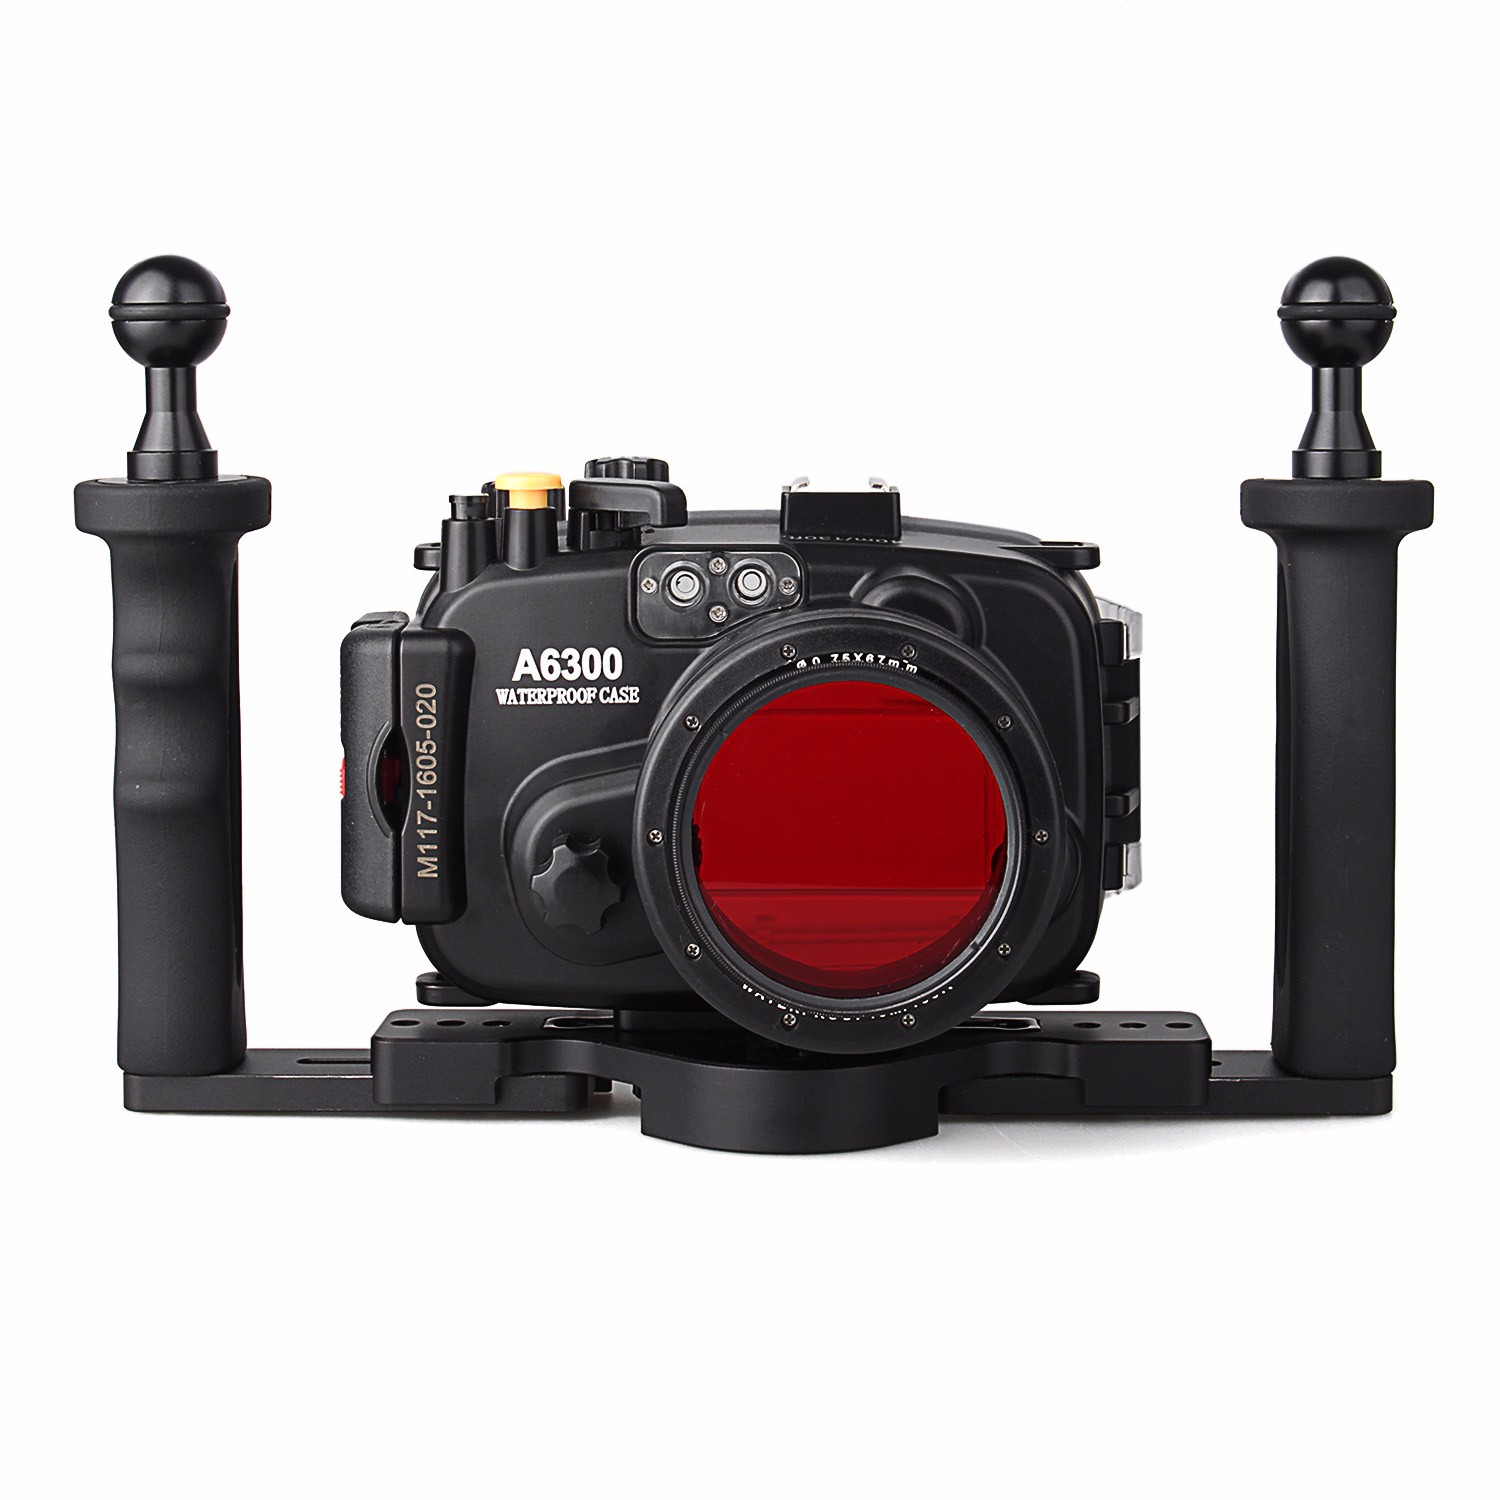 Meikon 40m/130ft Waterproof Underwater Camera Housing Case for A6300 16-50mm Lens + Two Hands Aluminium Tray + 67mm Red Filter